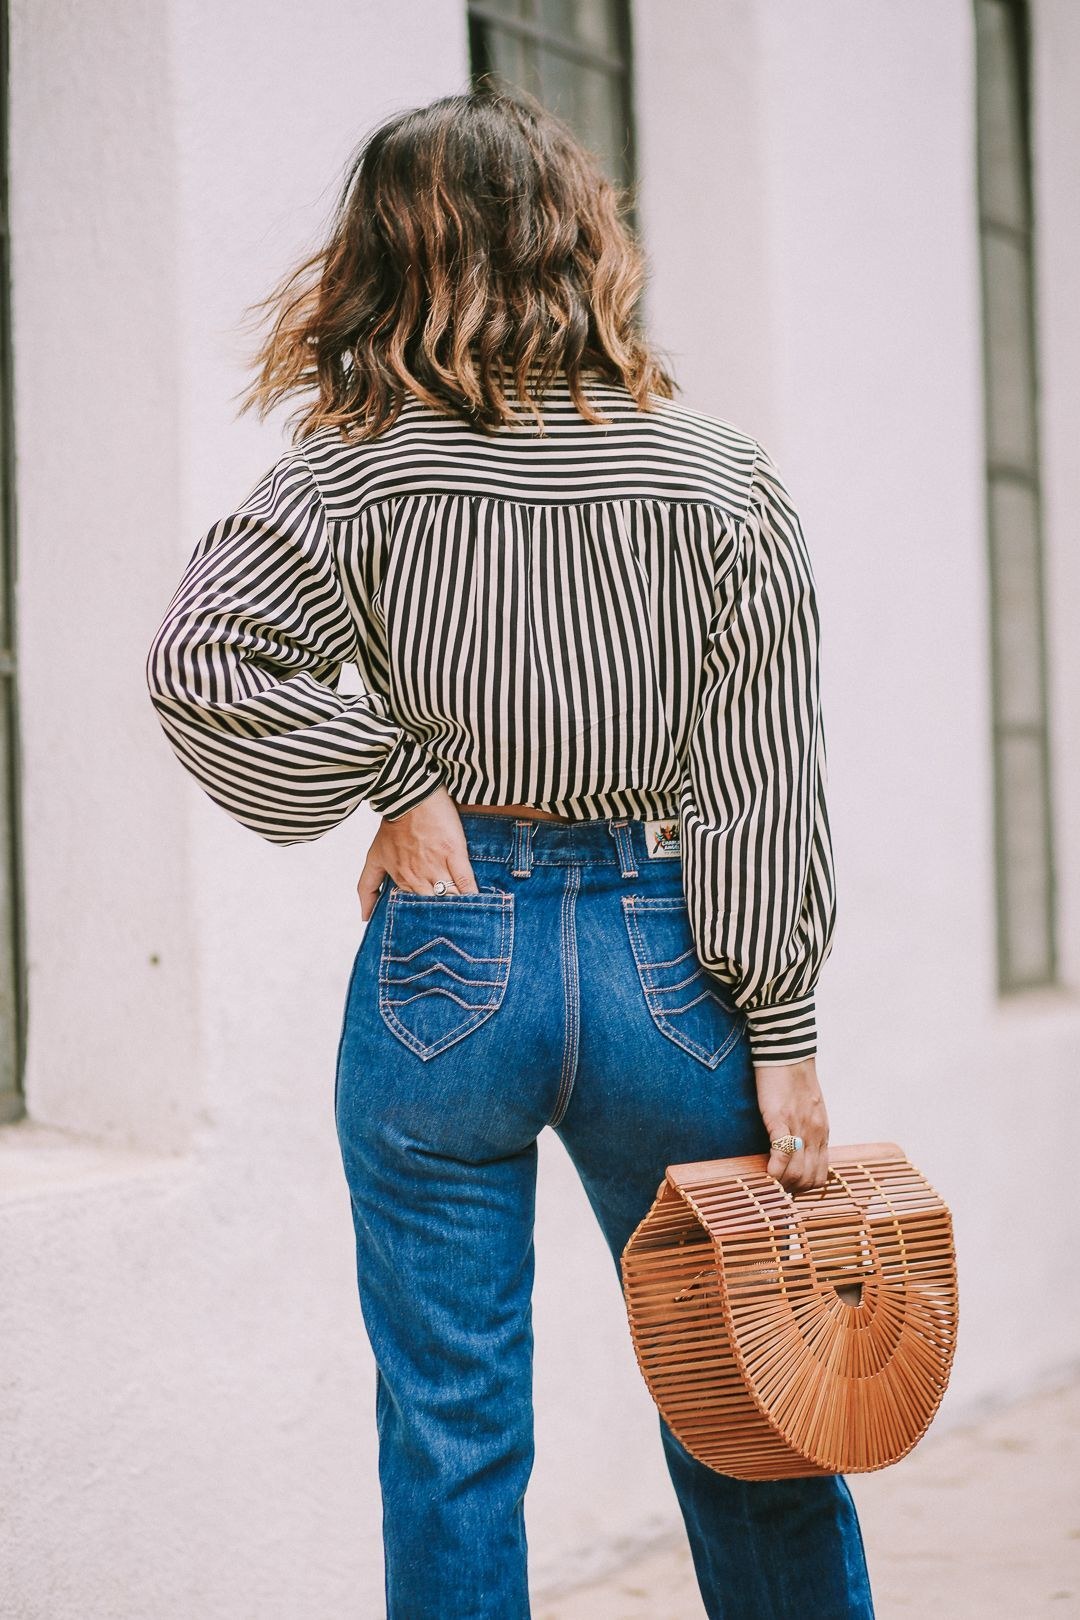 55 Best Modern Vintage Outfit Ideas For A Perfect Vintage Look Vintagetopia Vintage Jeans Outfit Vintage Outfits Perfect Vintage